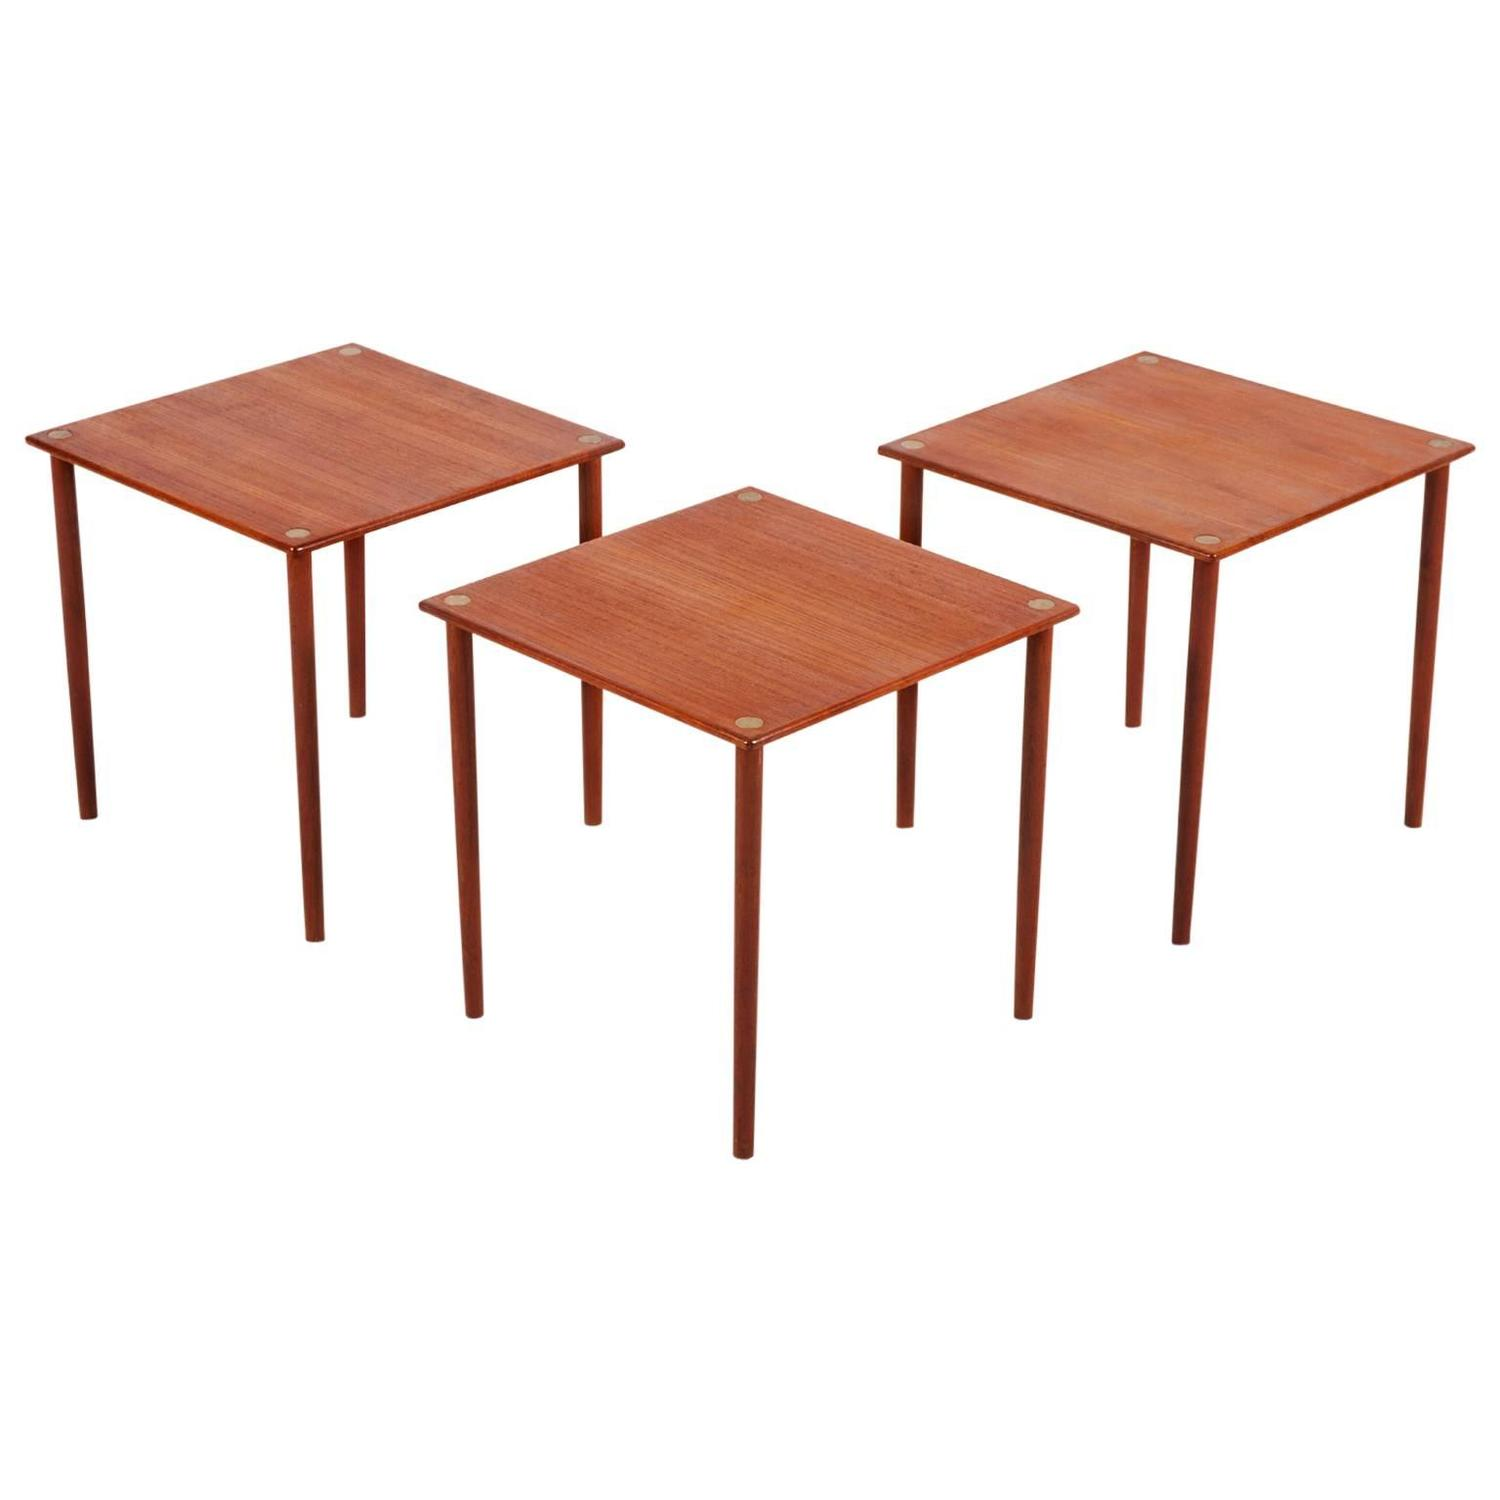 Set Of 3 Coffee Tables Access To The Path D Hostingspaces Dwfcoadmin Dwfco A Set Of 3 Coffee